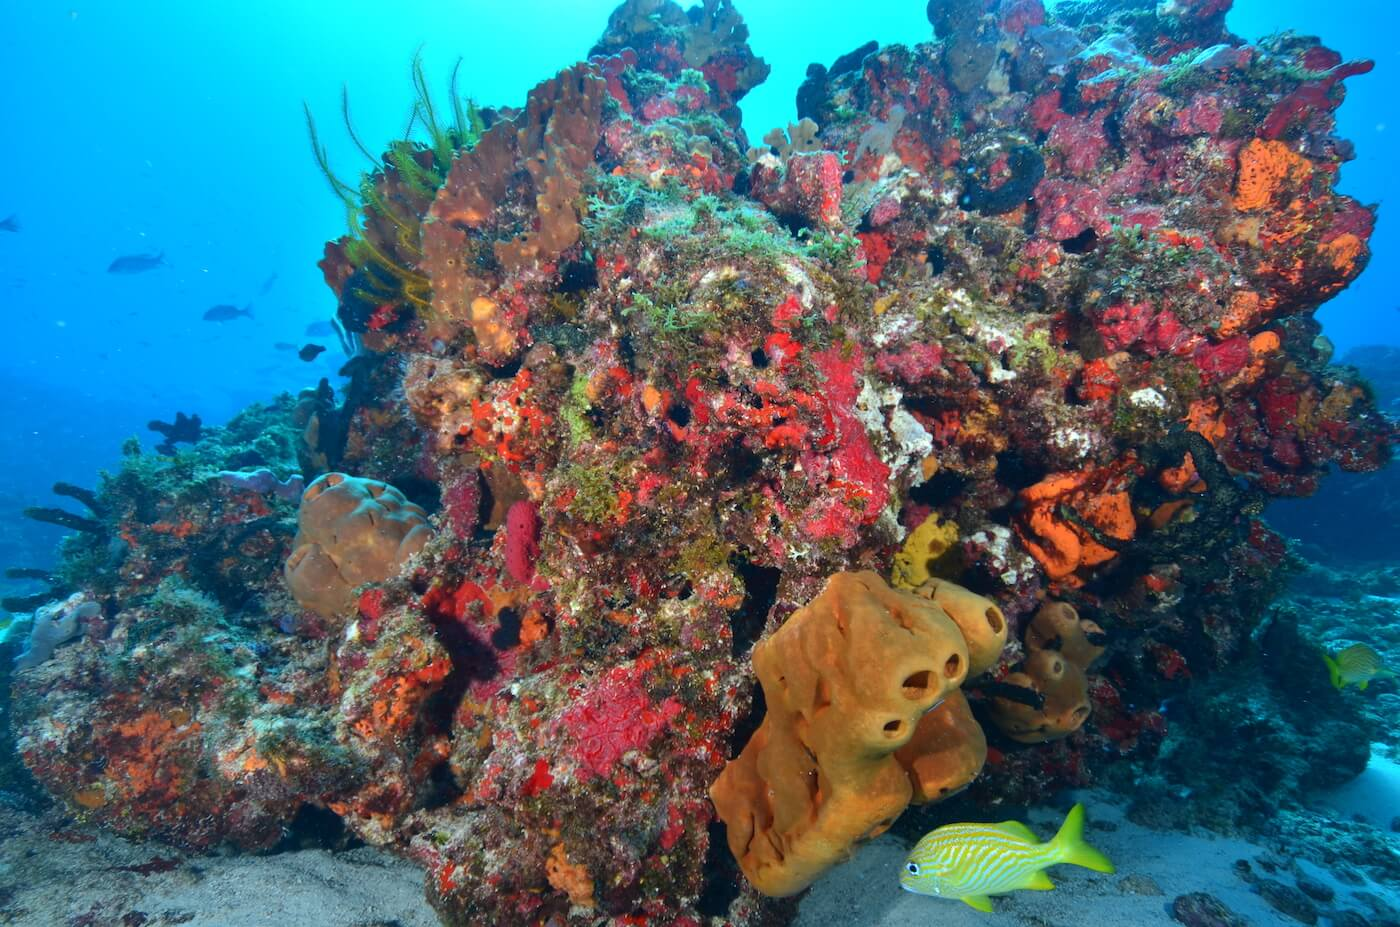 Coral-Reef-Cancun-Dive-Center-Caribbean-Connections-7